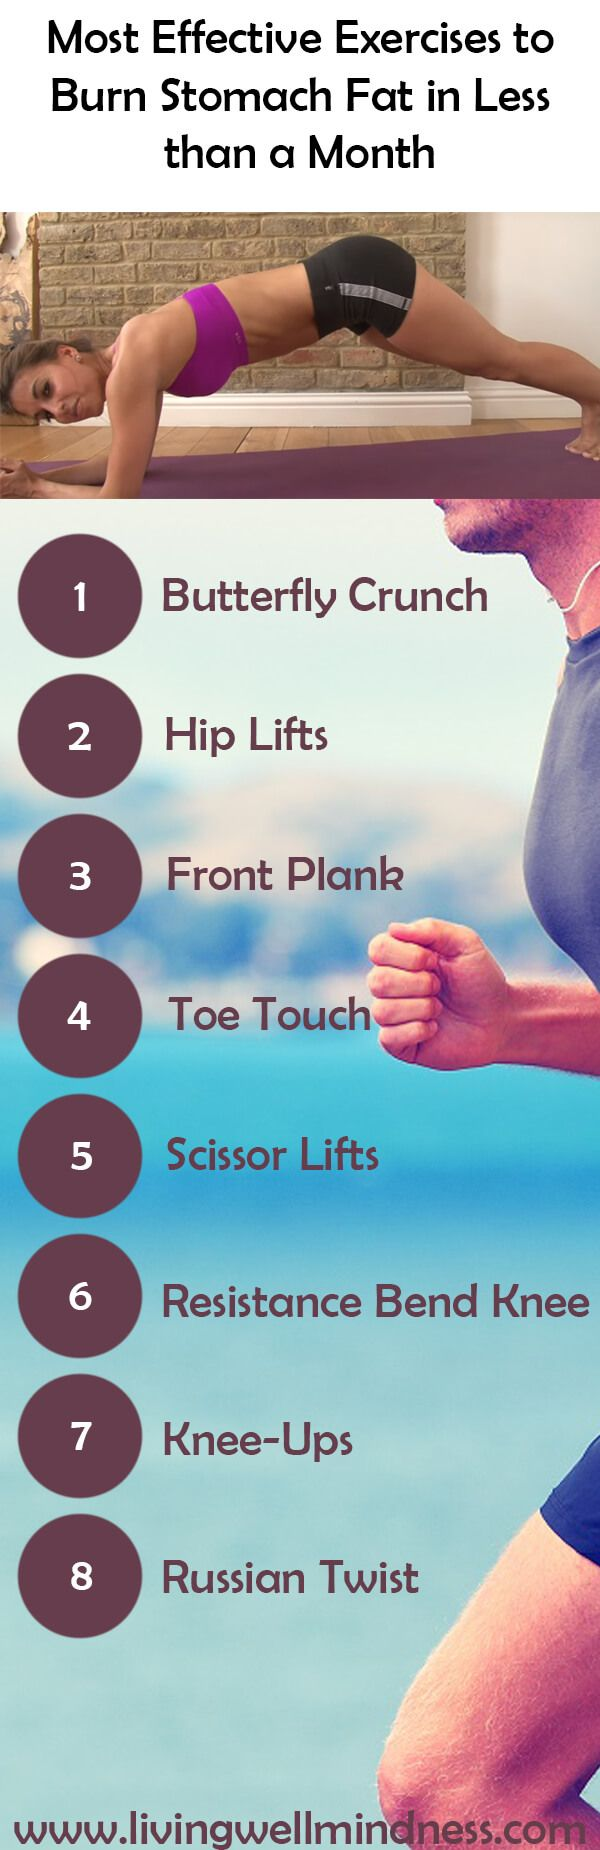 Most Effective Exercises to Burn Stomach Fat in Less than a Month - Living Wellmindness https://www.musclesaurus.com/flat-stomach-exercises/